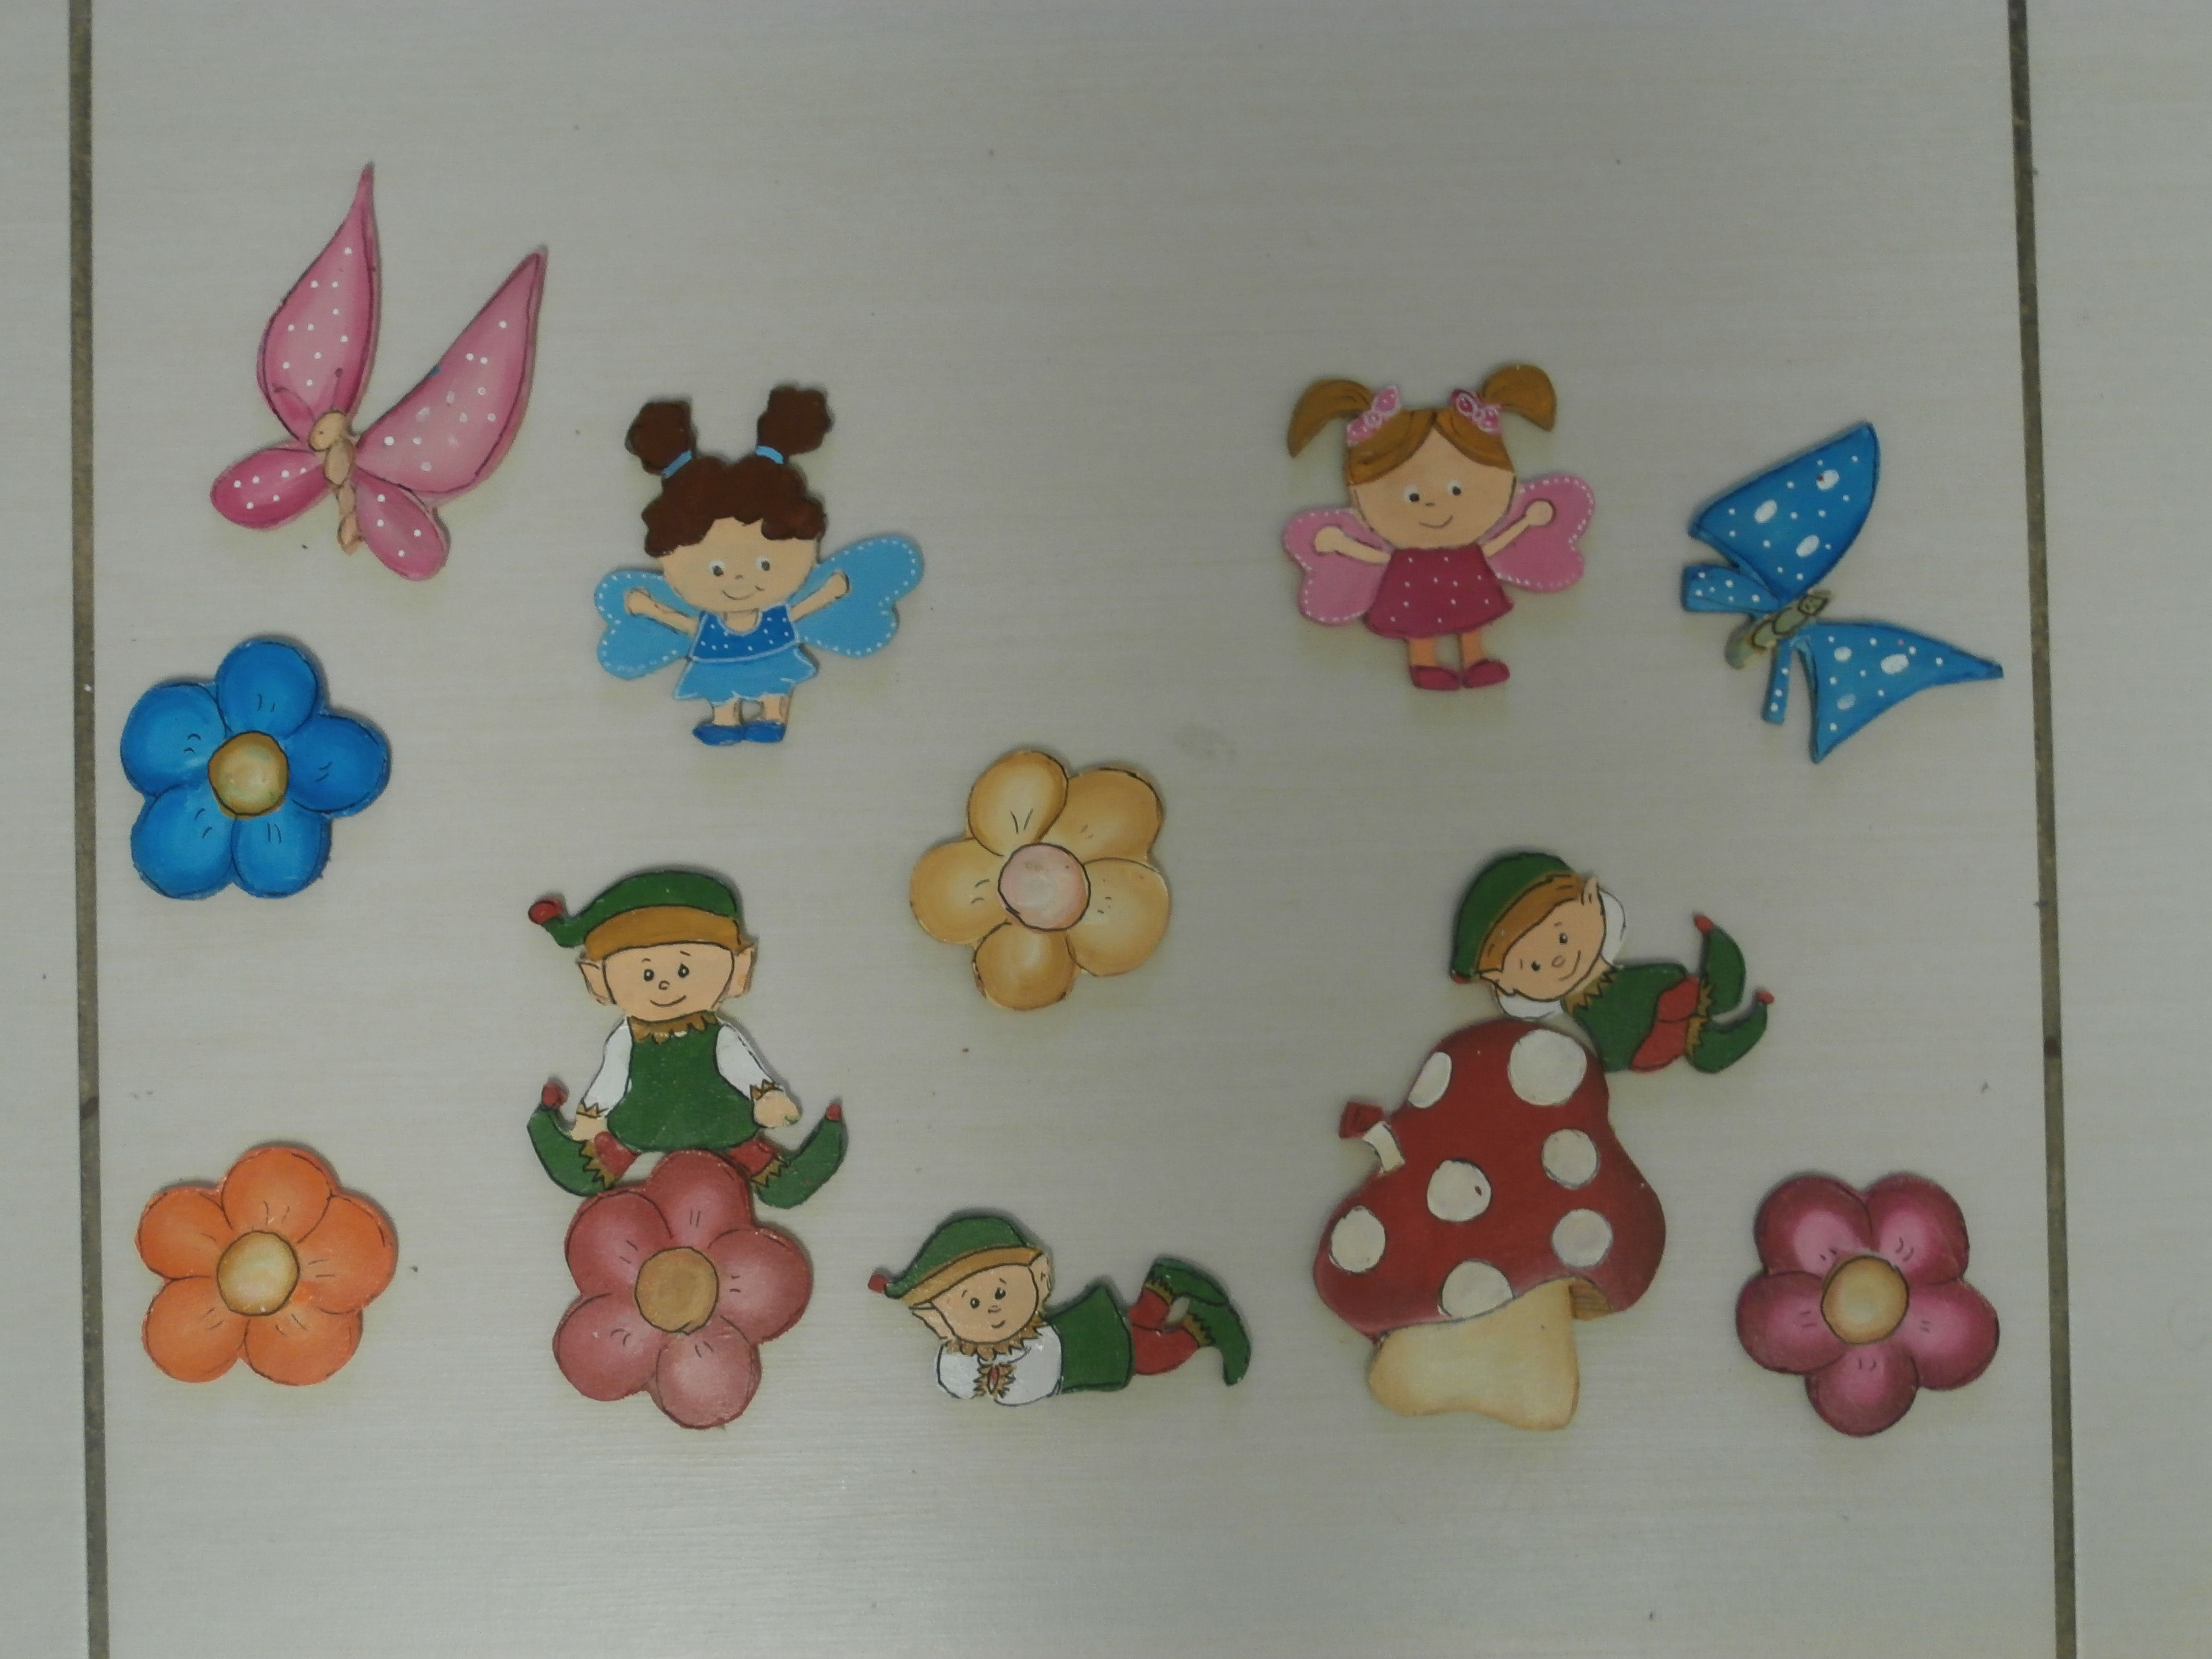 Bambini Dipinti ~ 27 best arredo bambini images on pinterest 50th angeles and angels